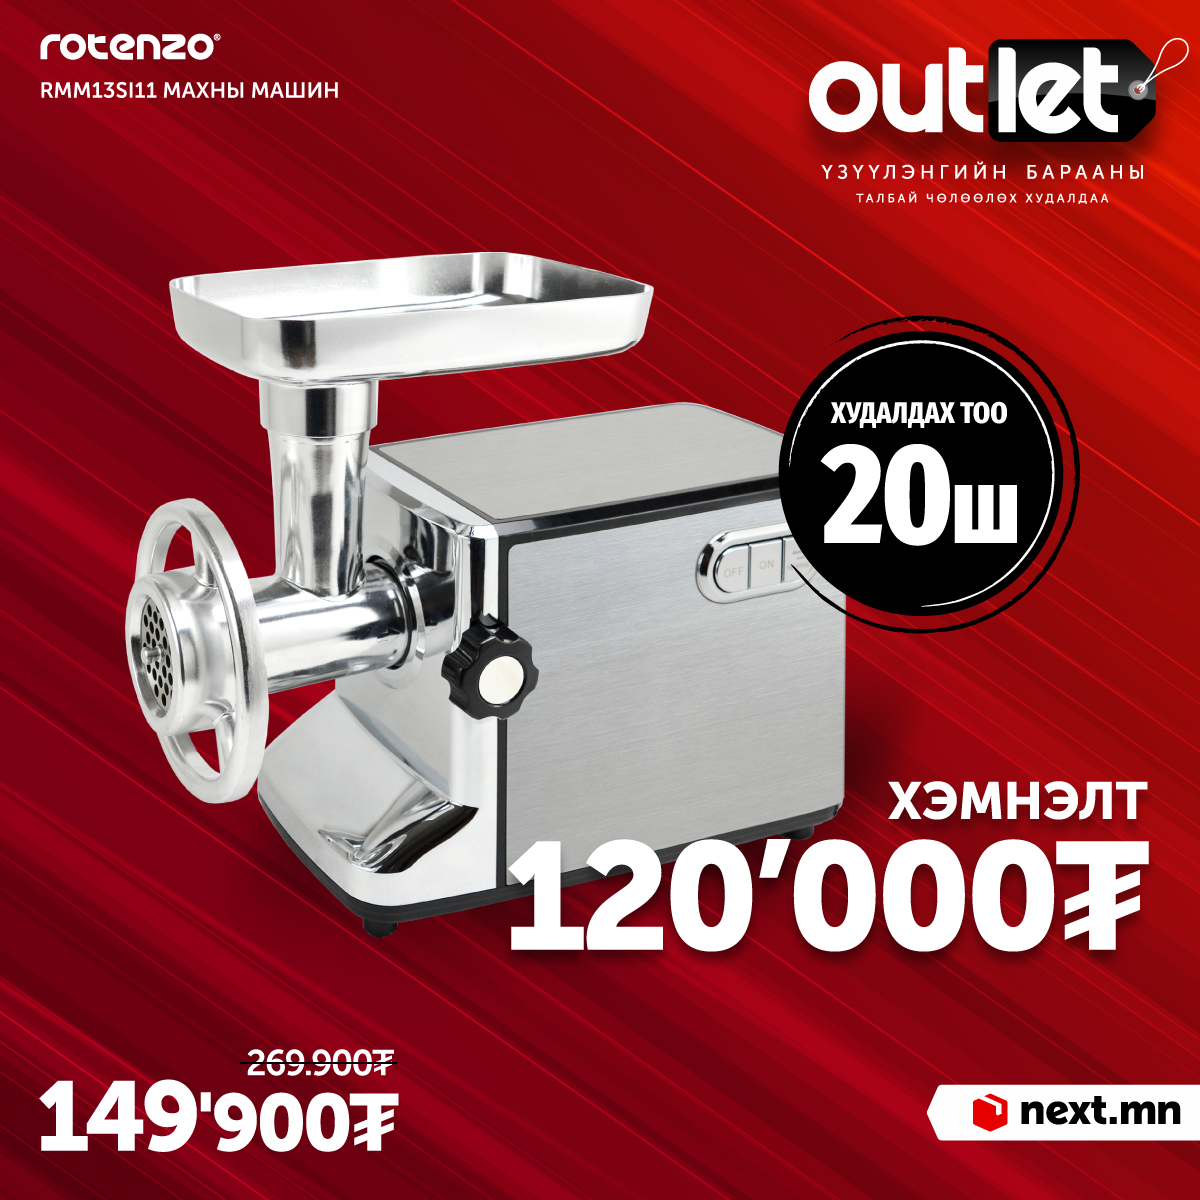 outlet (13)